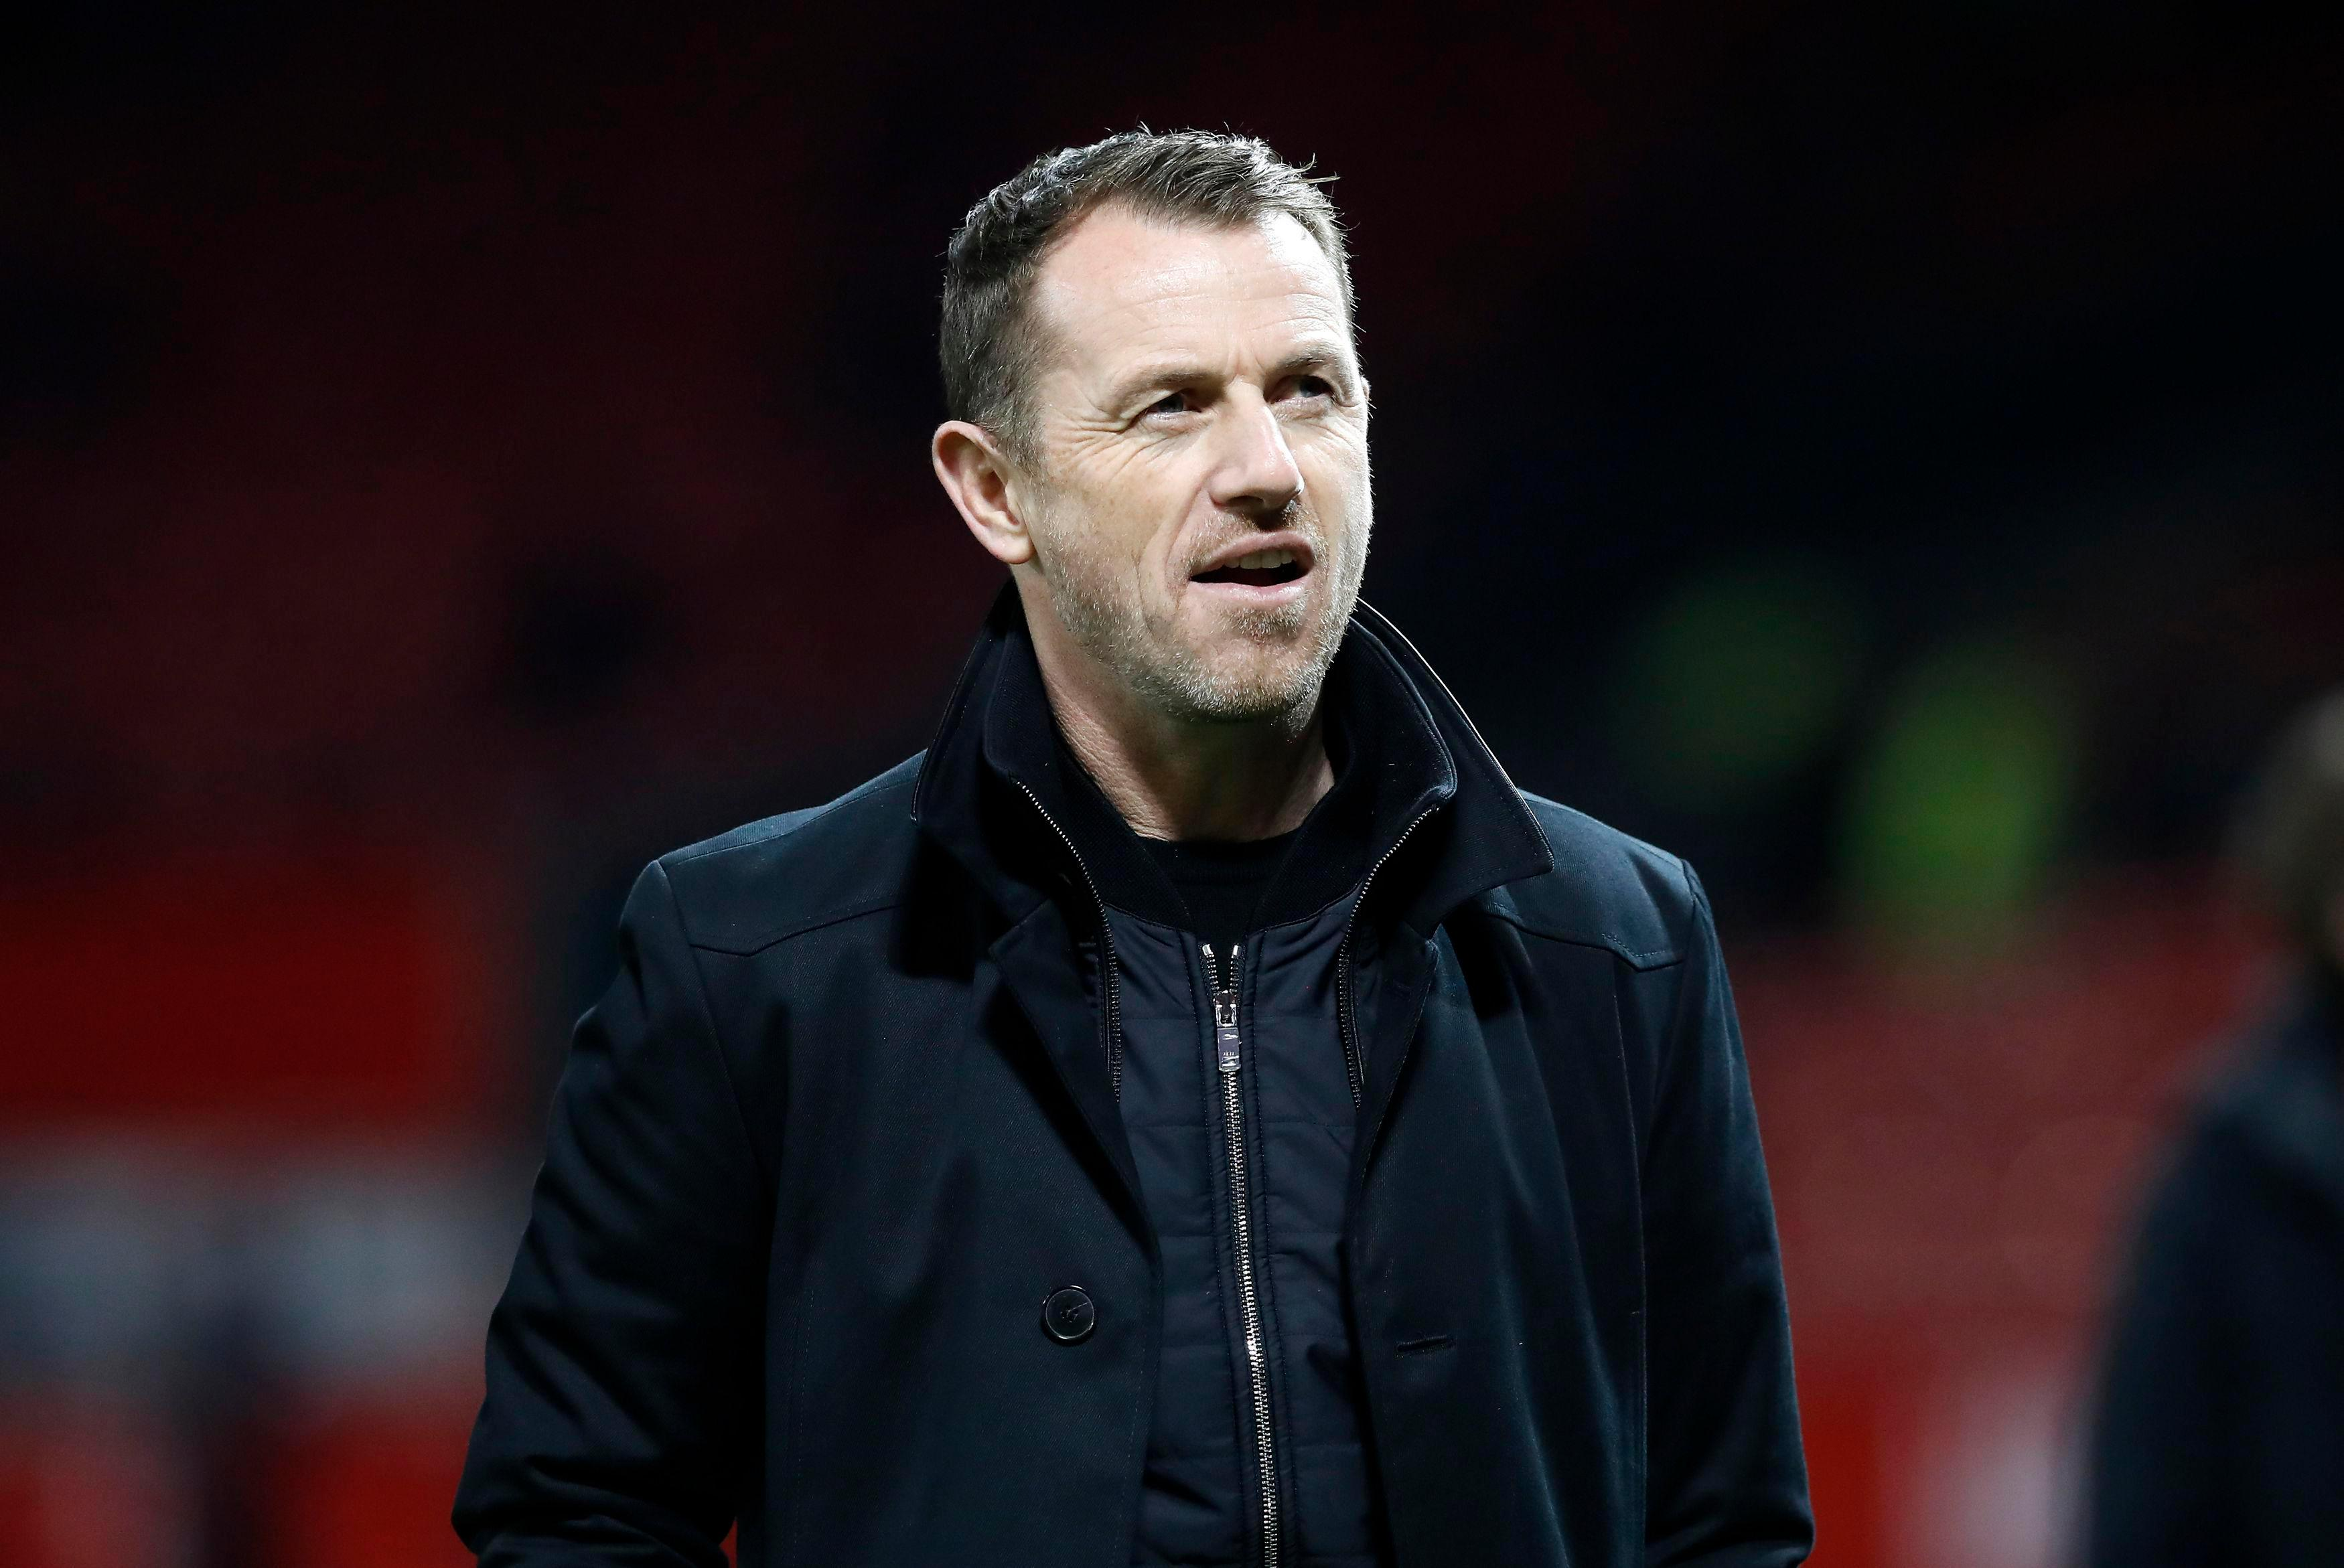 Gary Rowett to snub Stoke City and sign new deal with Derby